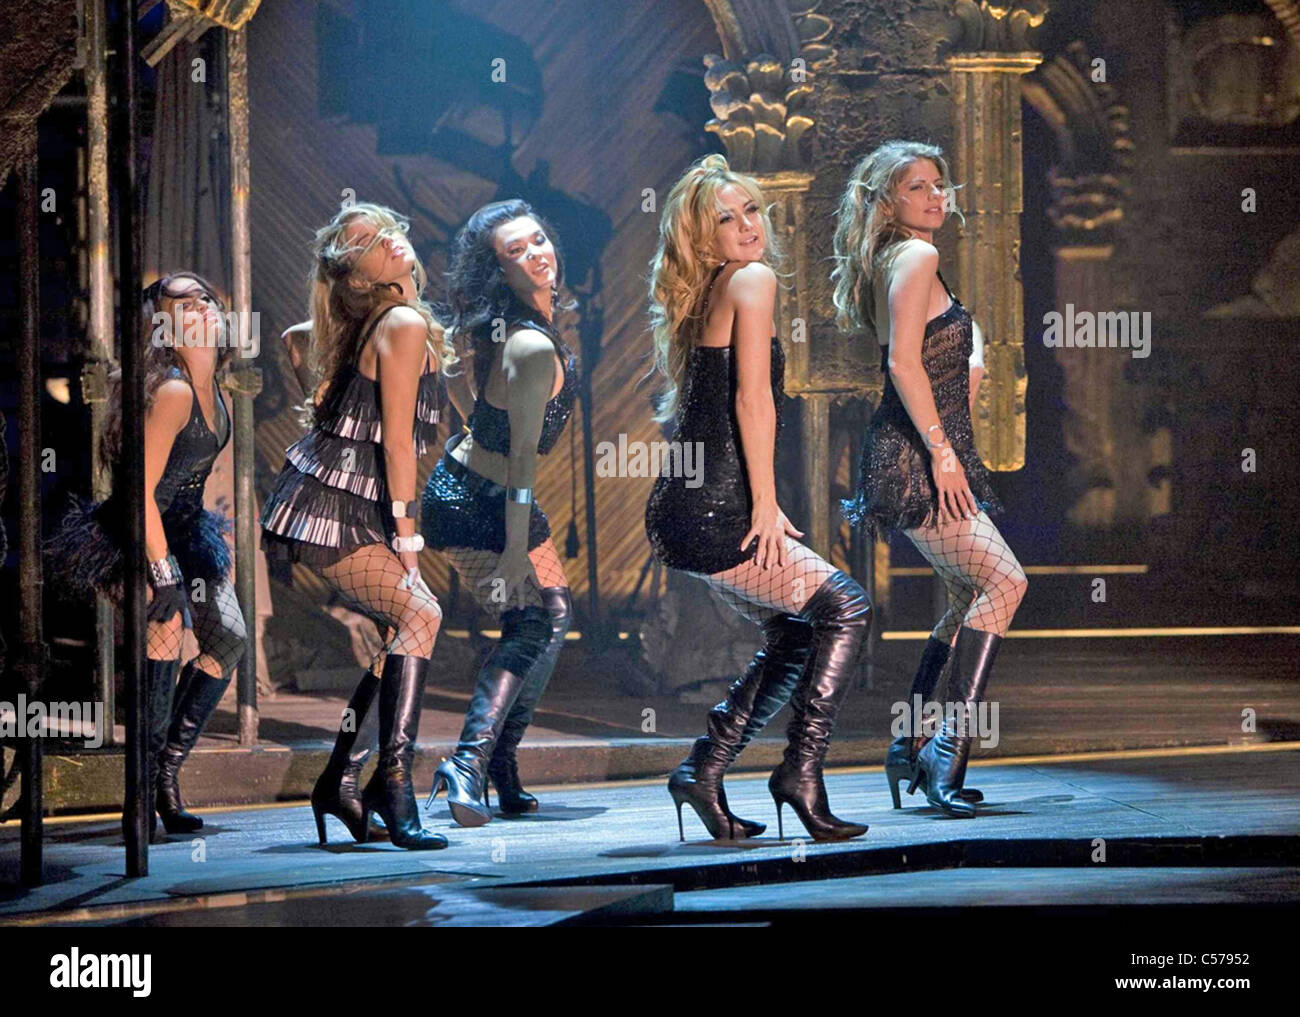 NINE 2009 Weinstein Company film with Kate Hudson second from right - Stock Image